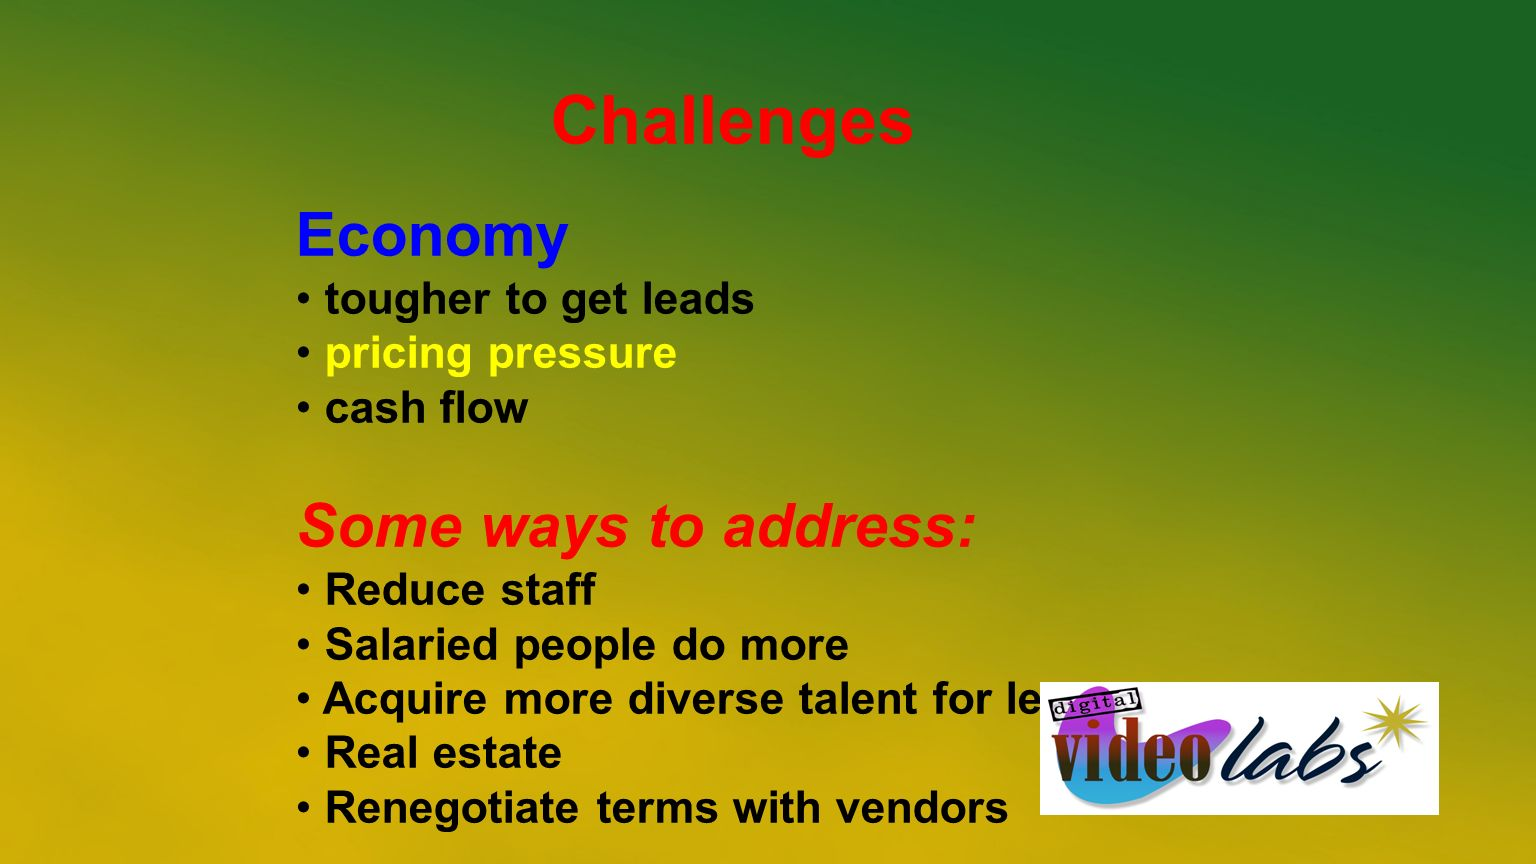 Challenges Economy tougher to get leads pricing pressure cash flow Some ways to address: Reduce staff Salaried people do more Acquire more diverse tal